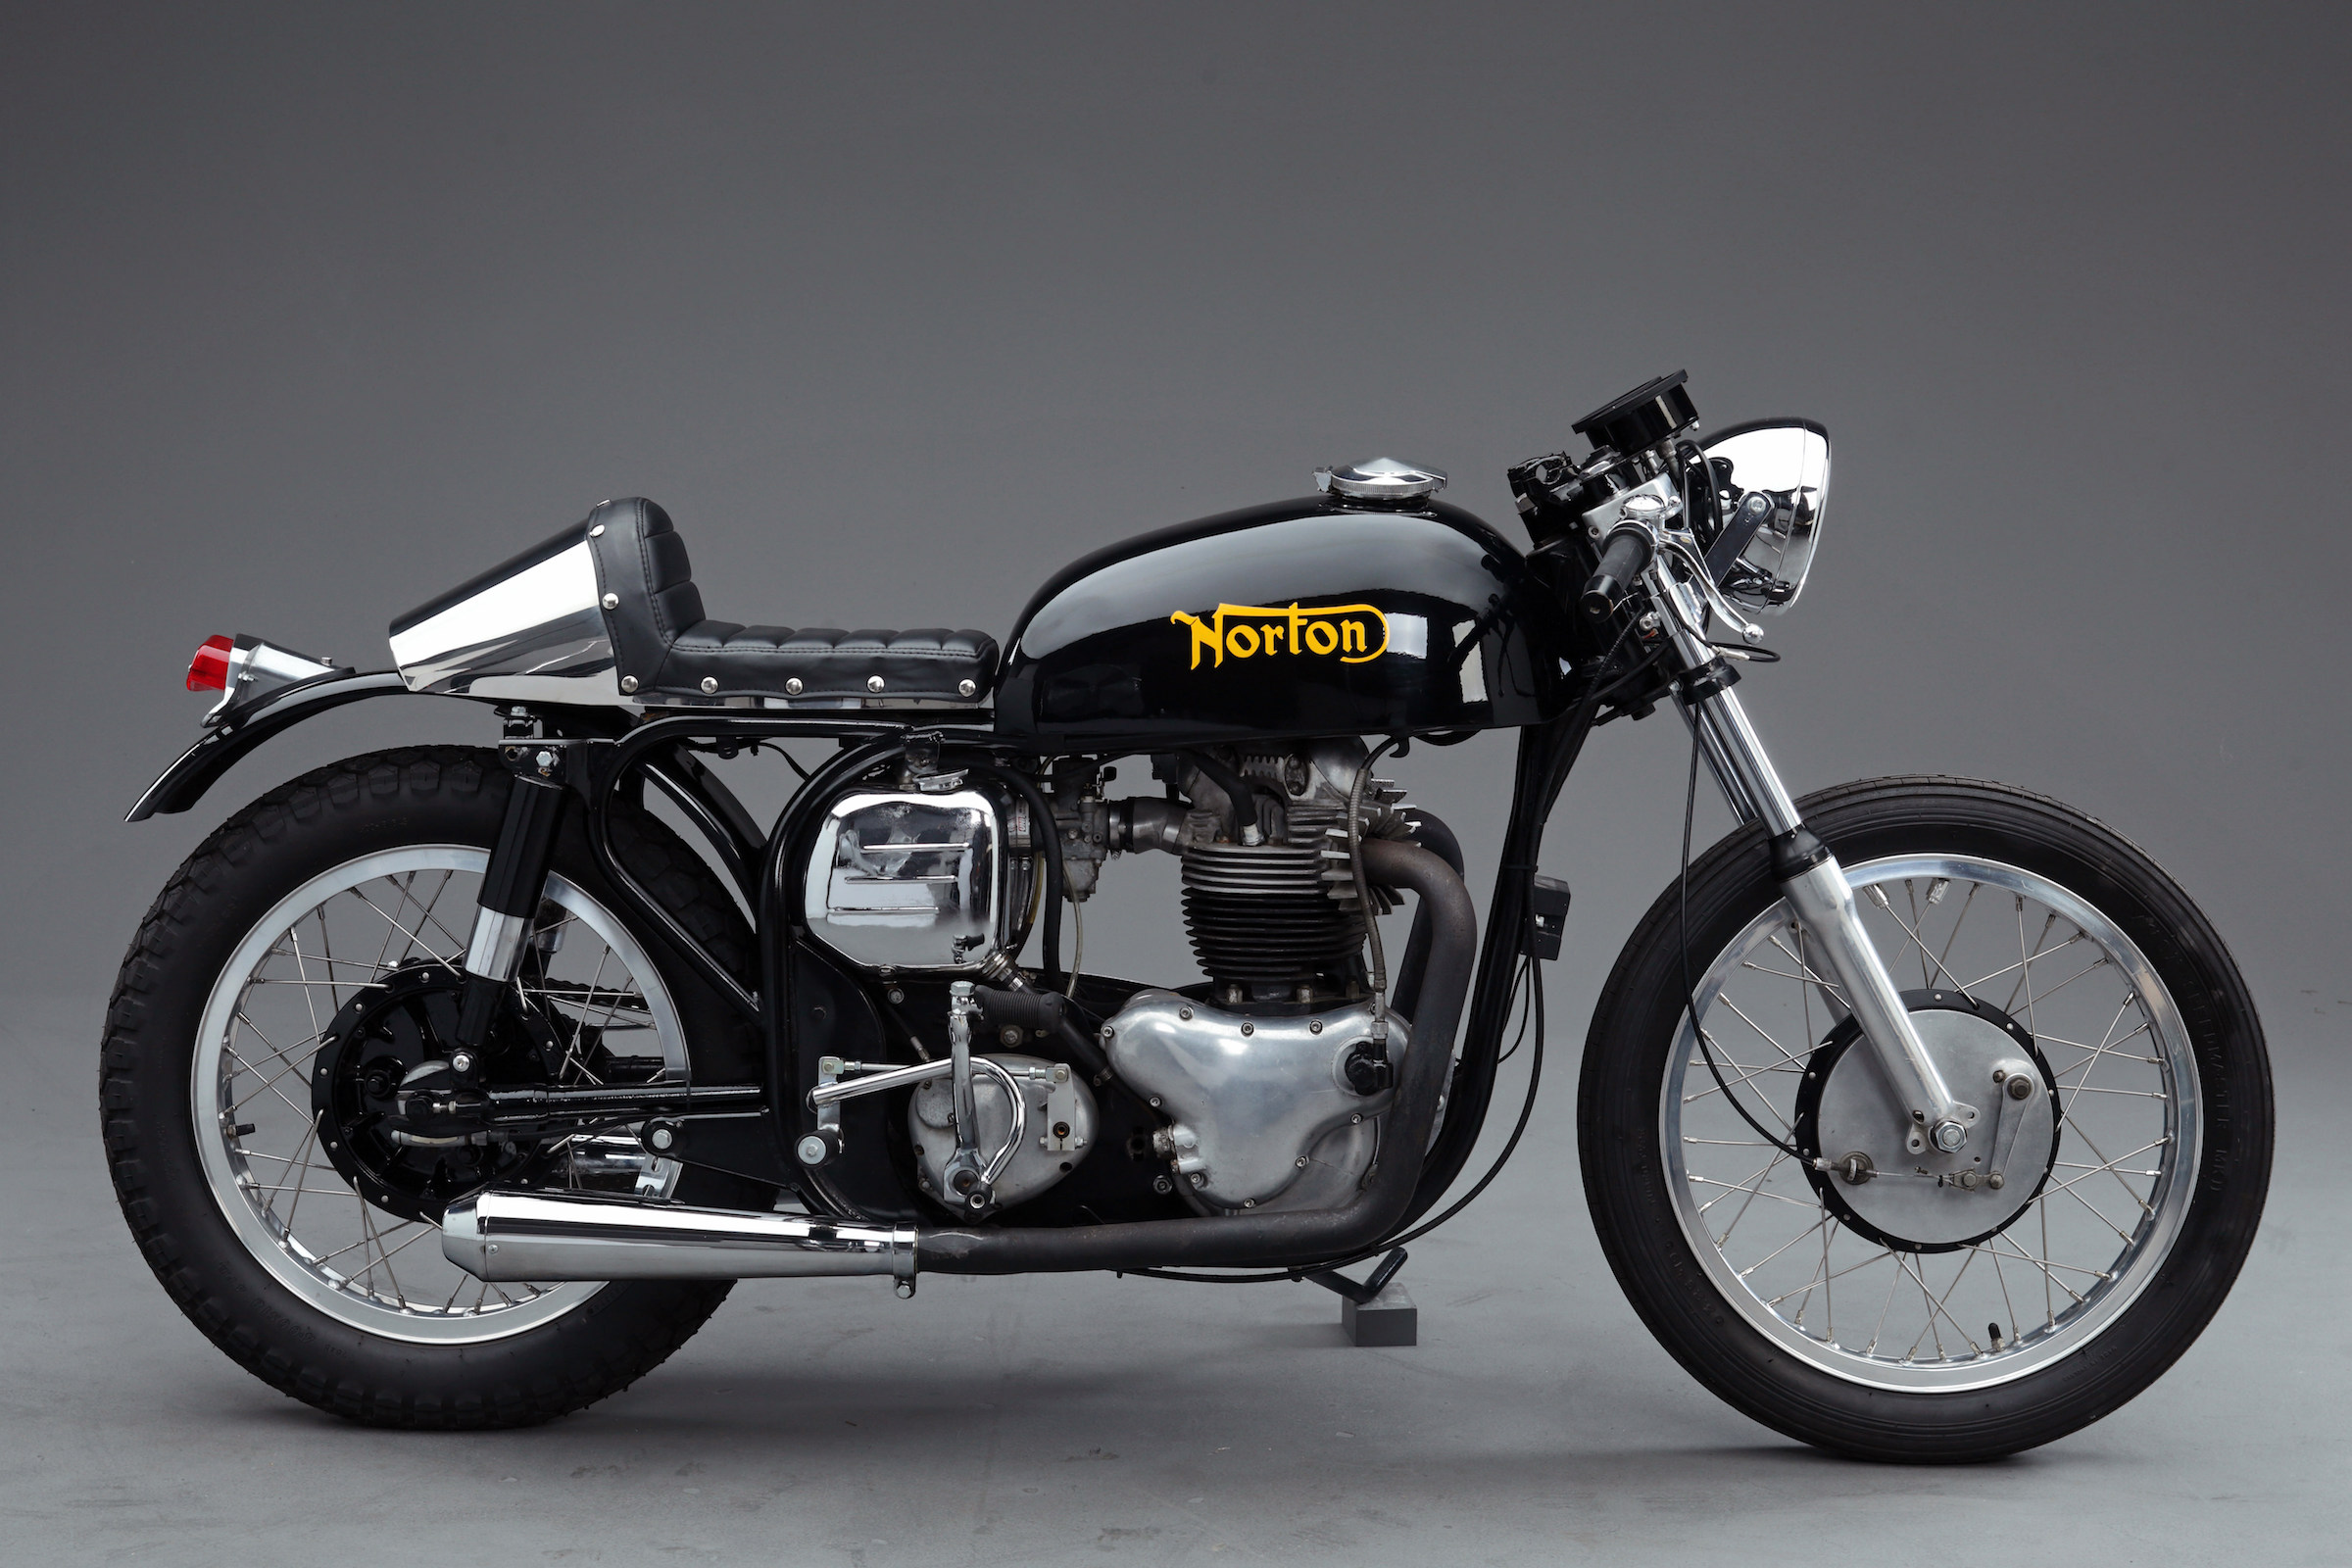 New Norton Cafe Racer For Sale